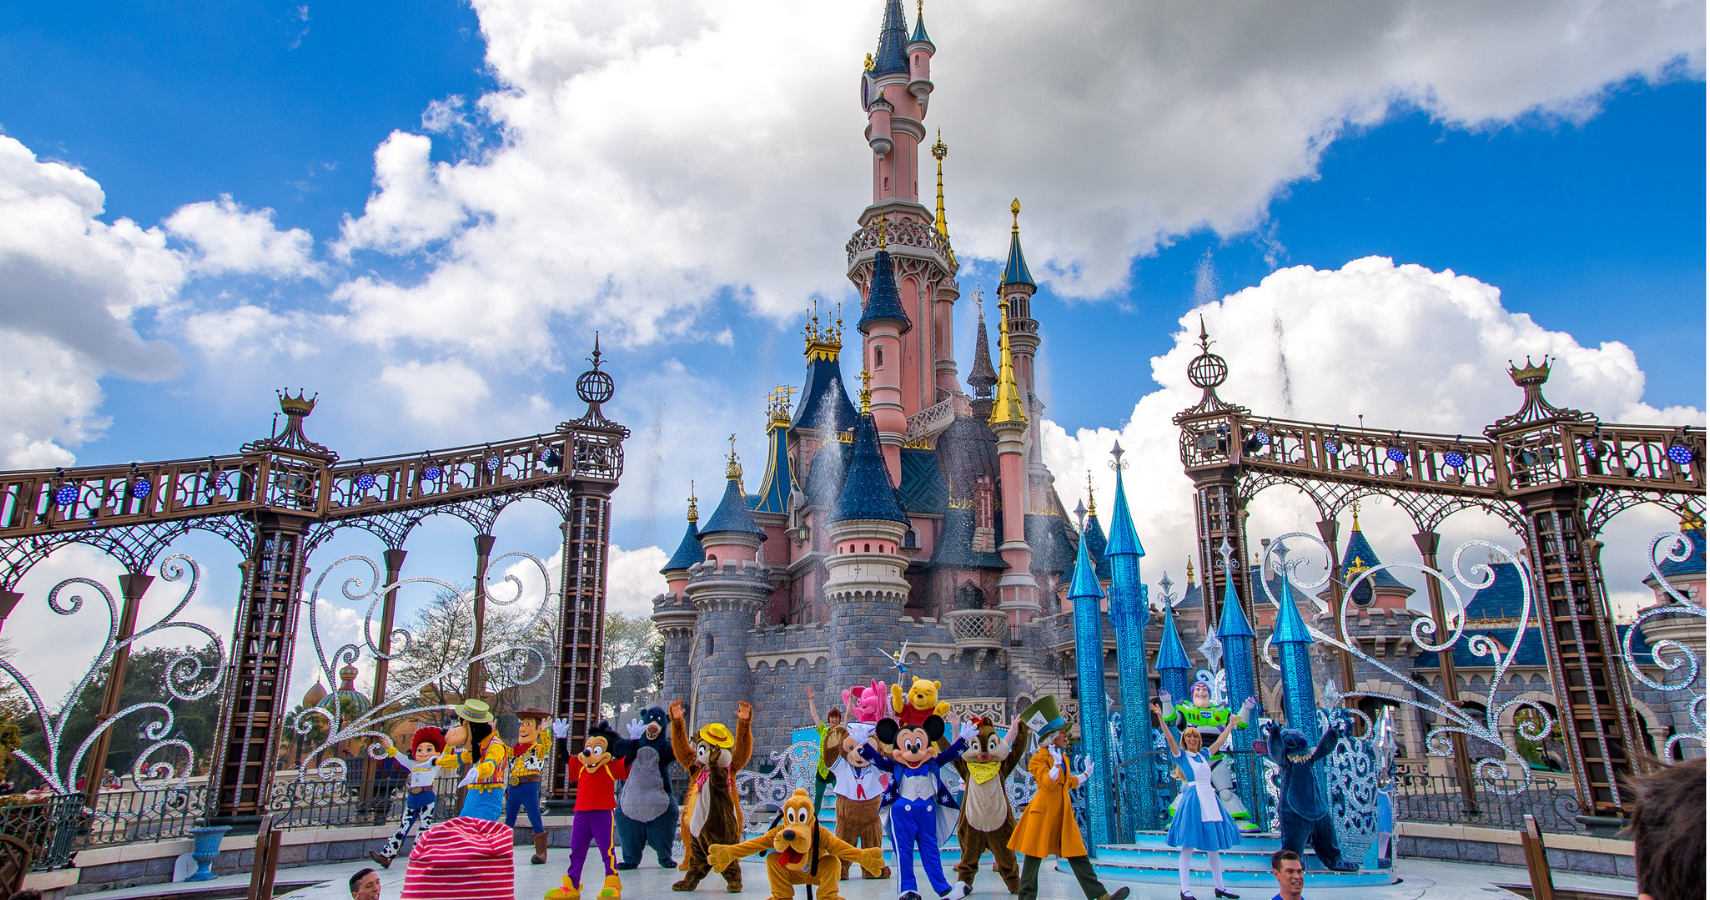 Disneyland Around the World cover image